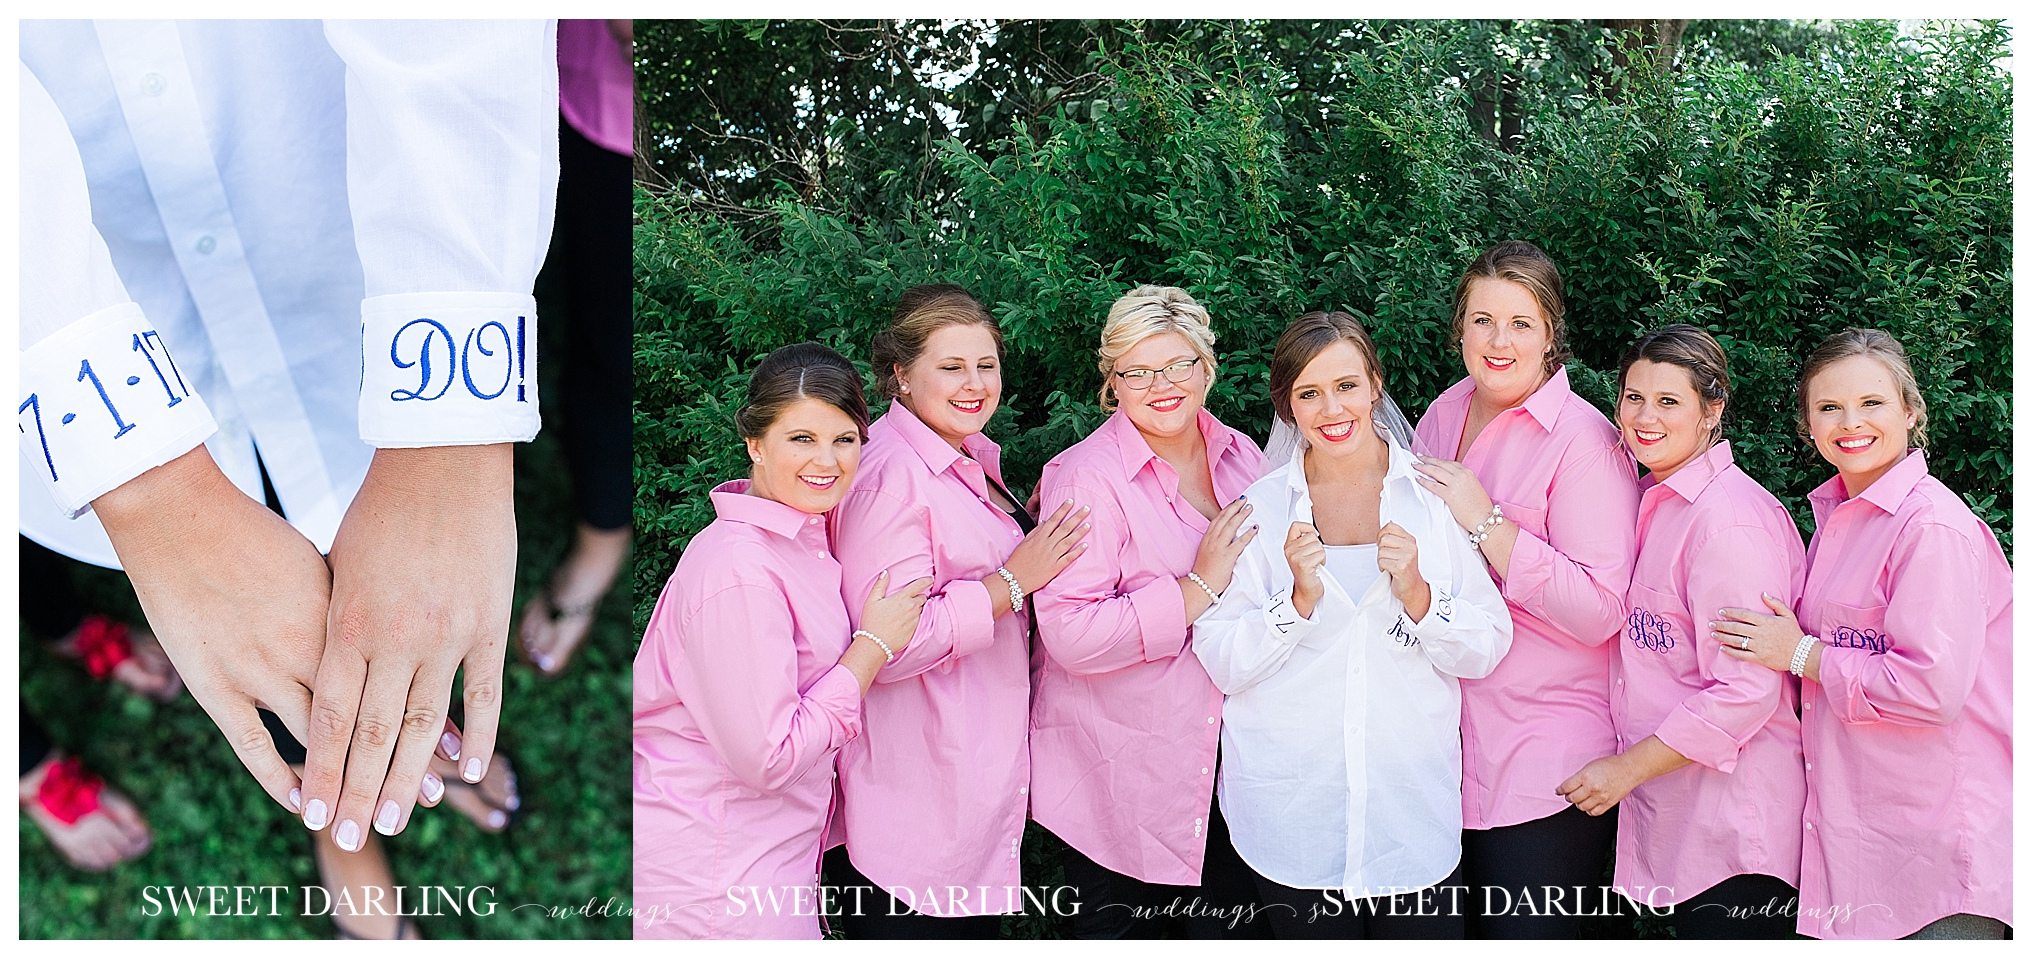 champaign-county-royal-paxton-illinois-sweet-darling-weddings-photography-red-navy-roses_1375.jpg